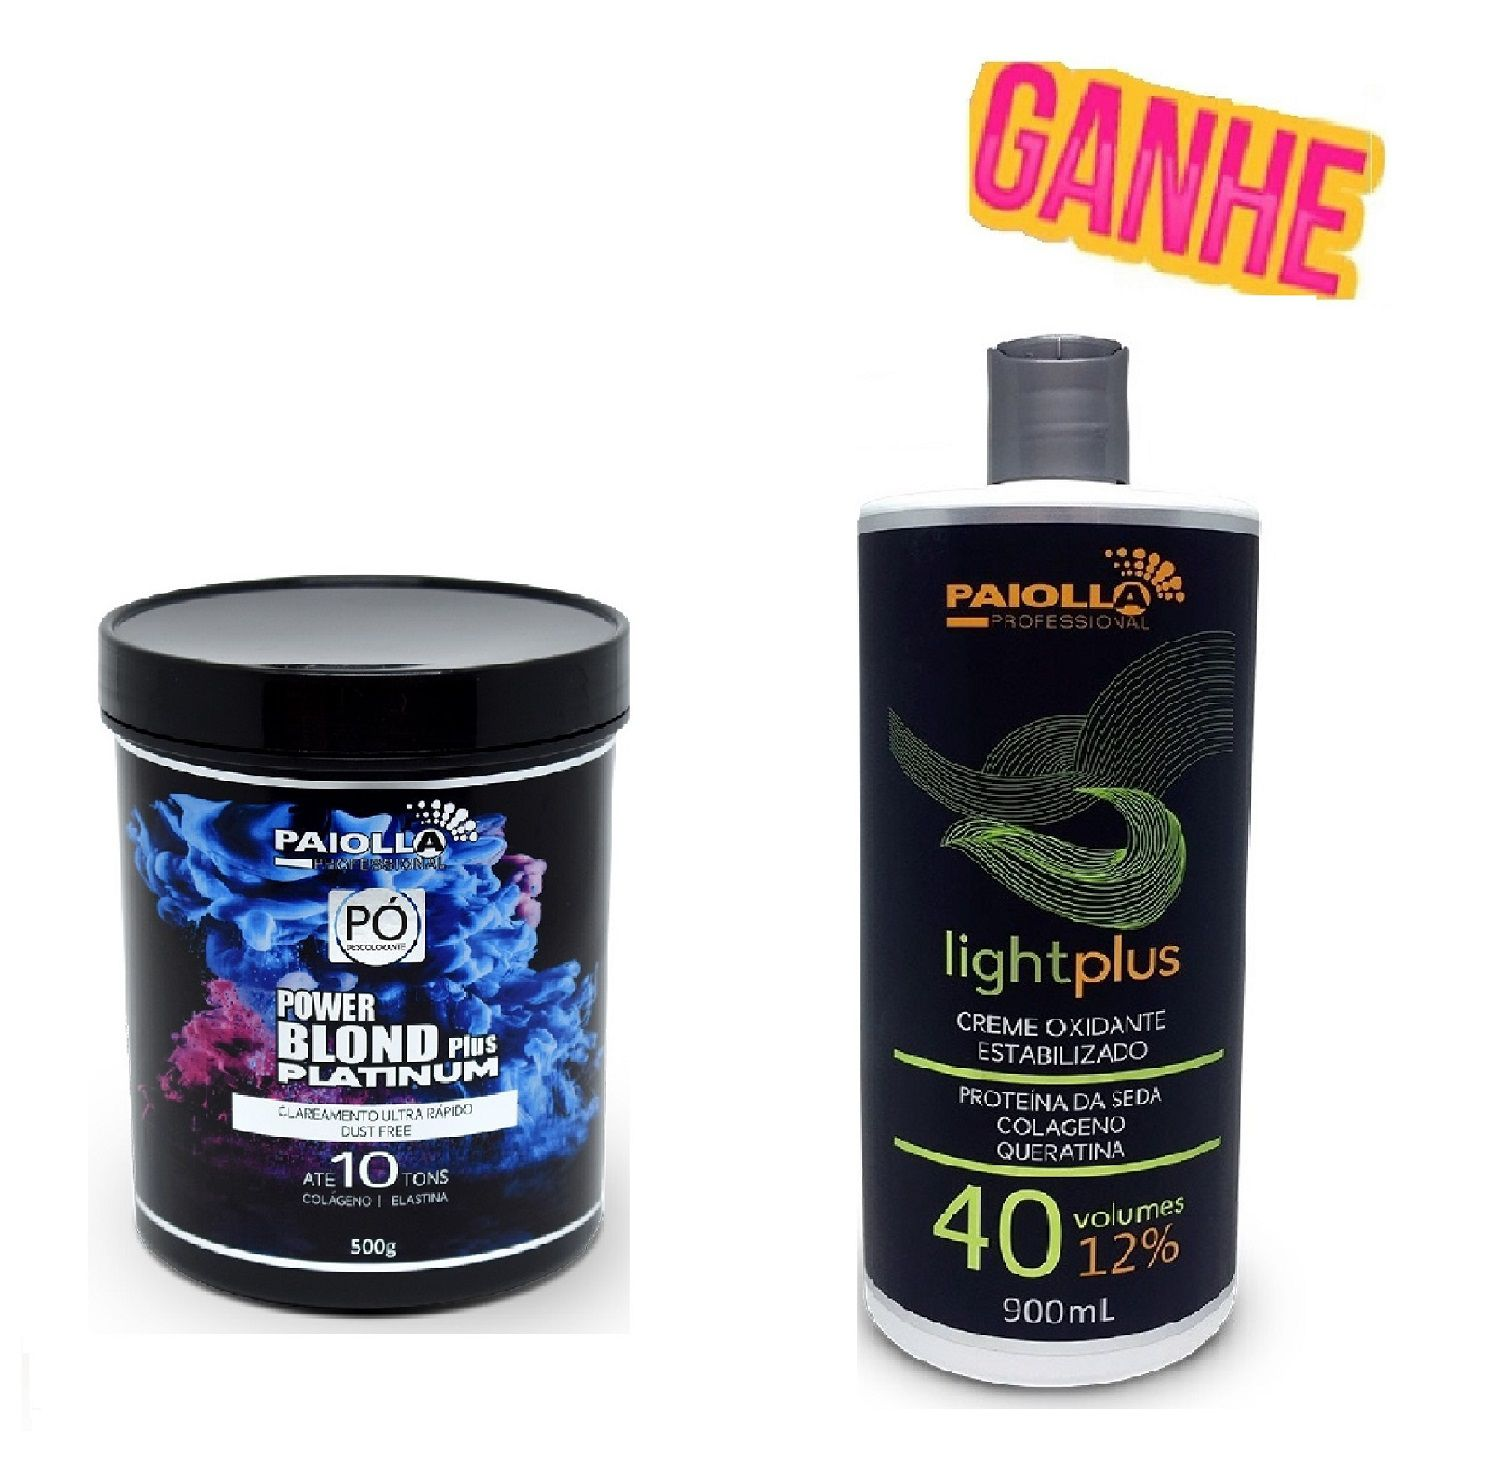 COMBO Pó Descolorante Power Blond Plus Platinum 500g + OX 40 Volumes GRÁTIS